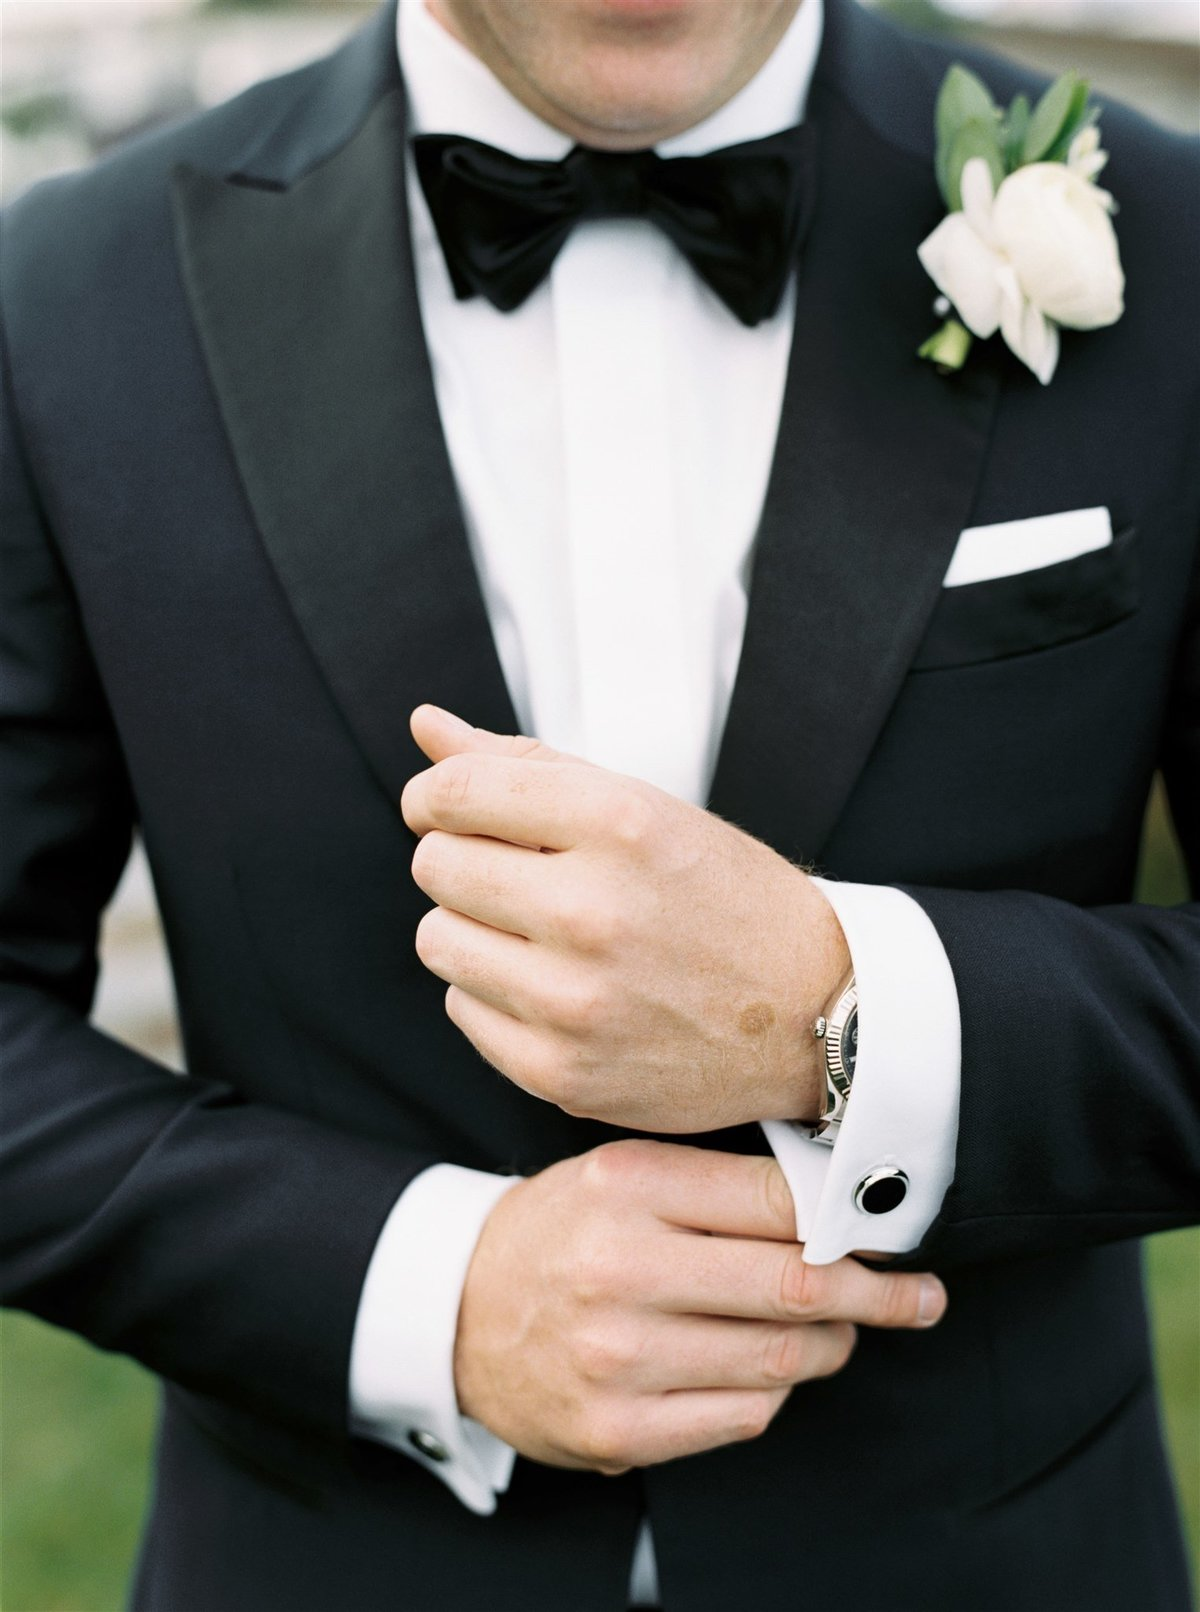 Black tie custom tuxedo for a Cape Cod Wedding by luxury Cape Cod wedding planner and designer Always Yours Events